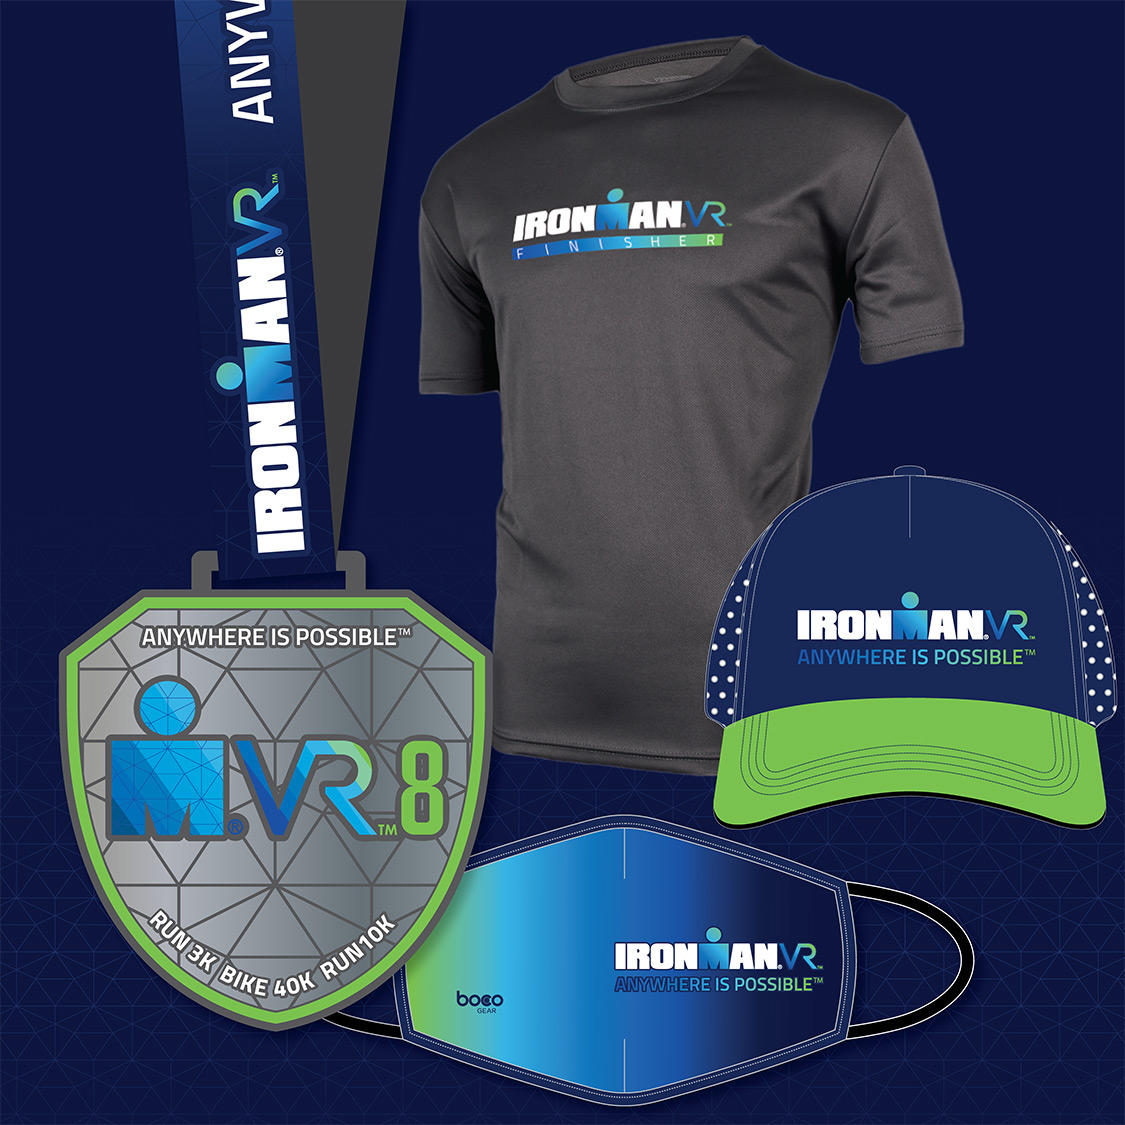 🏅 Last call! If youre in the U.S. or Europe, reward yourself with one of our IRONMAN VR8 Finisher Bundles! After another 6 hours, you wont be able to purchase them again! U.S.: ironmanstore.com/ironman-vr Europe: eu.ironmanstore.com/ironman-vr